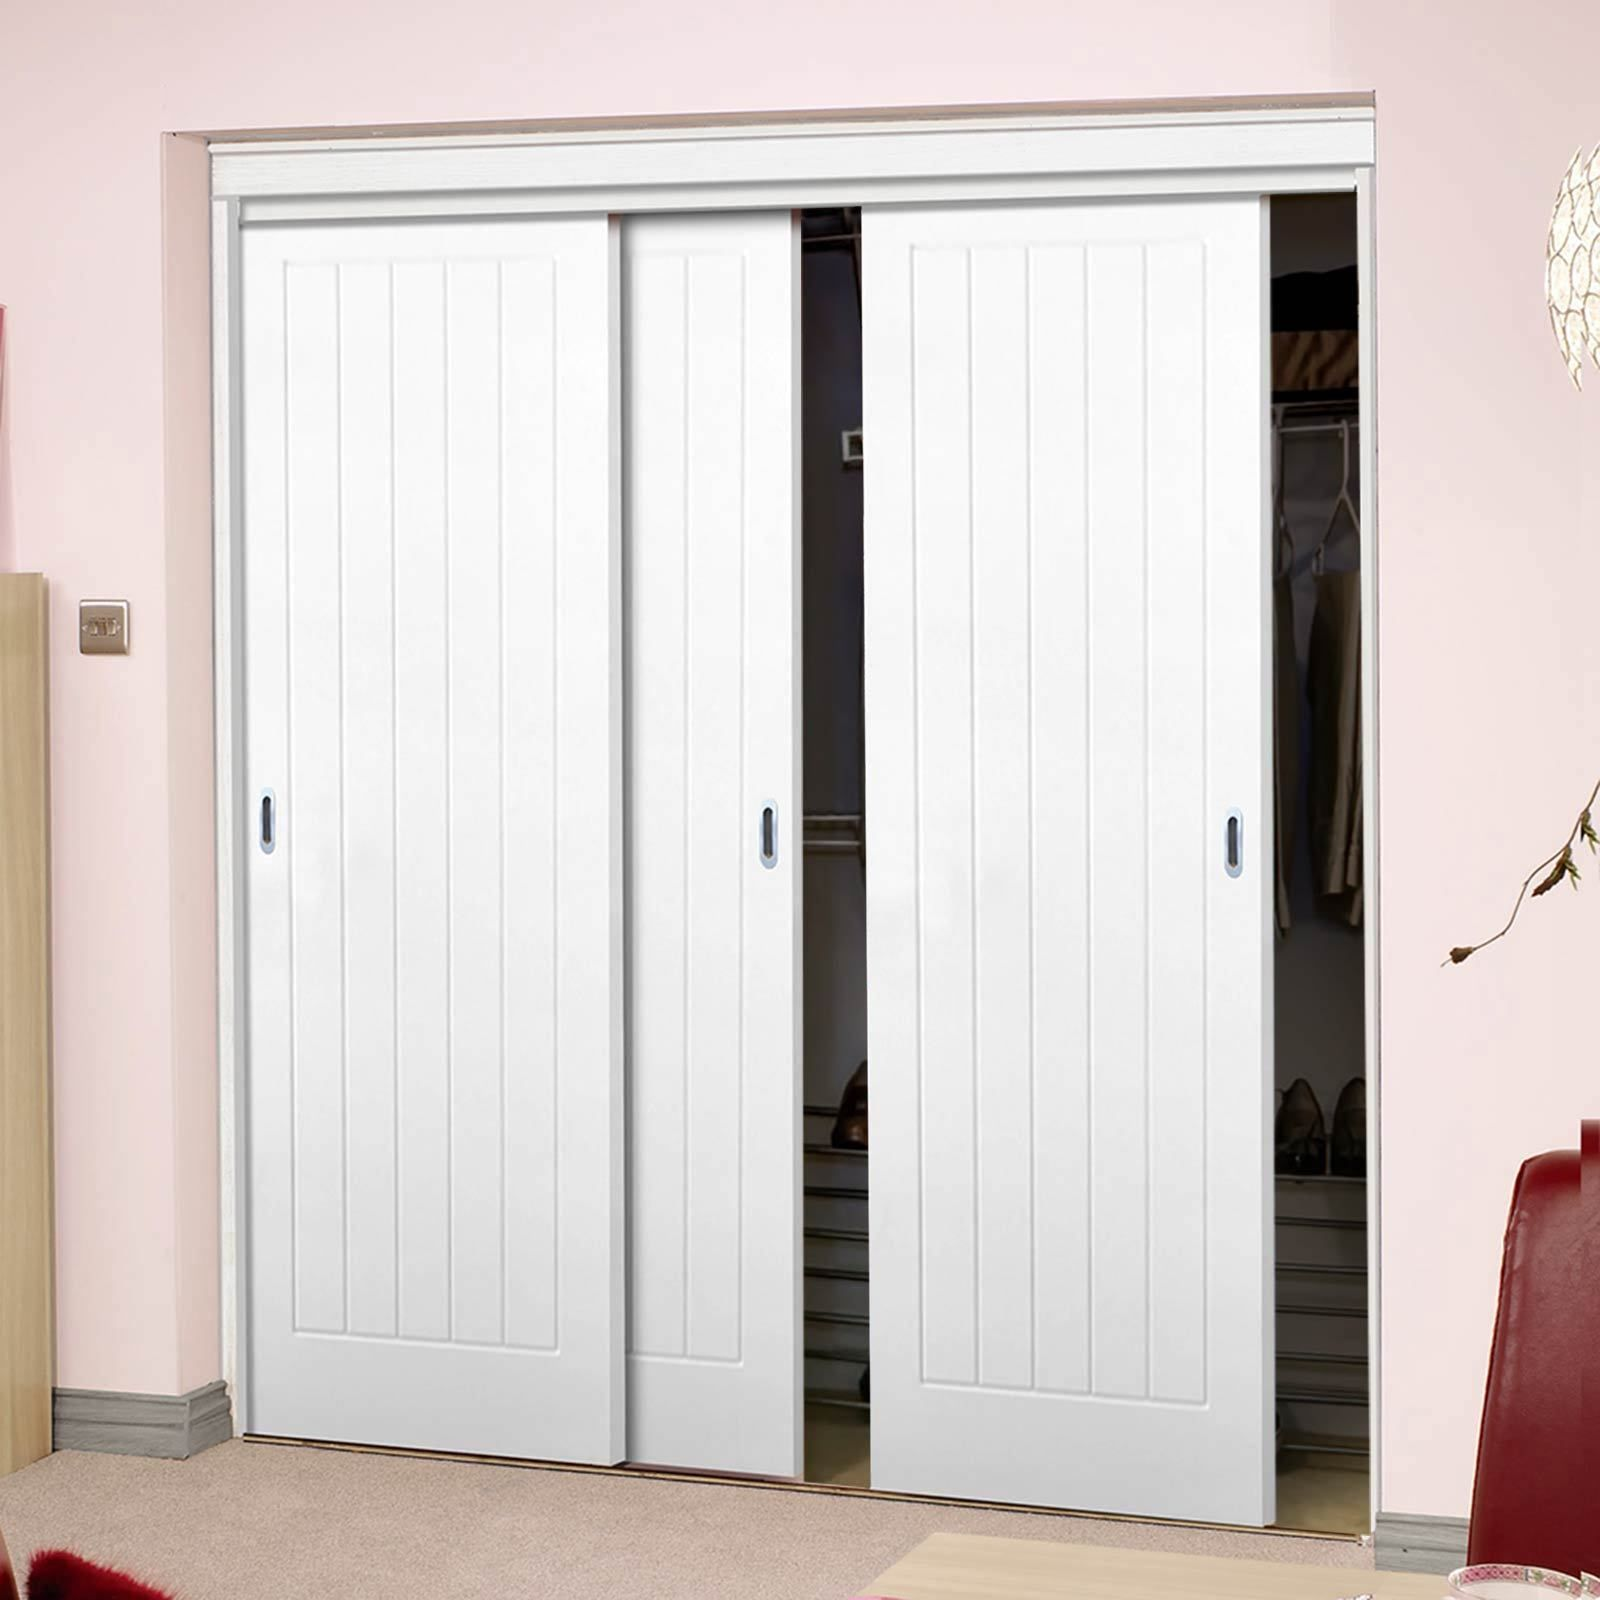 Three Sliding Wardrobe Doors Frame Kit Textured Vertical 5 Panel Wardrobedoors Whitedoors Sliding Wardrobe Doors Wardrobe Doors Sliding Wardrobe